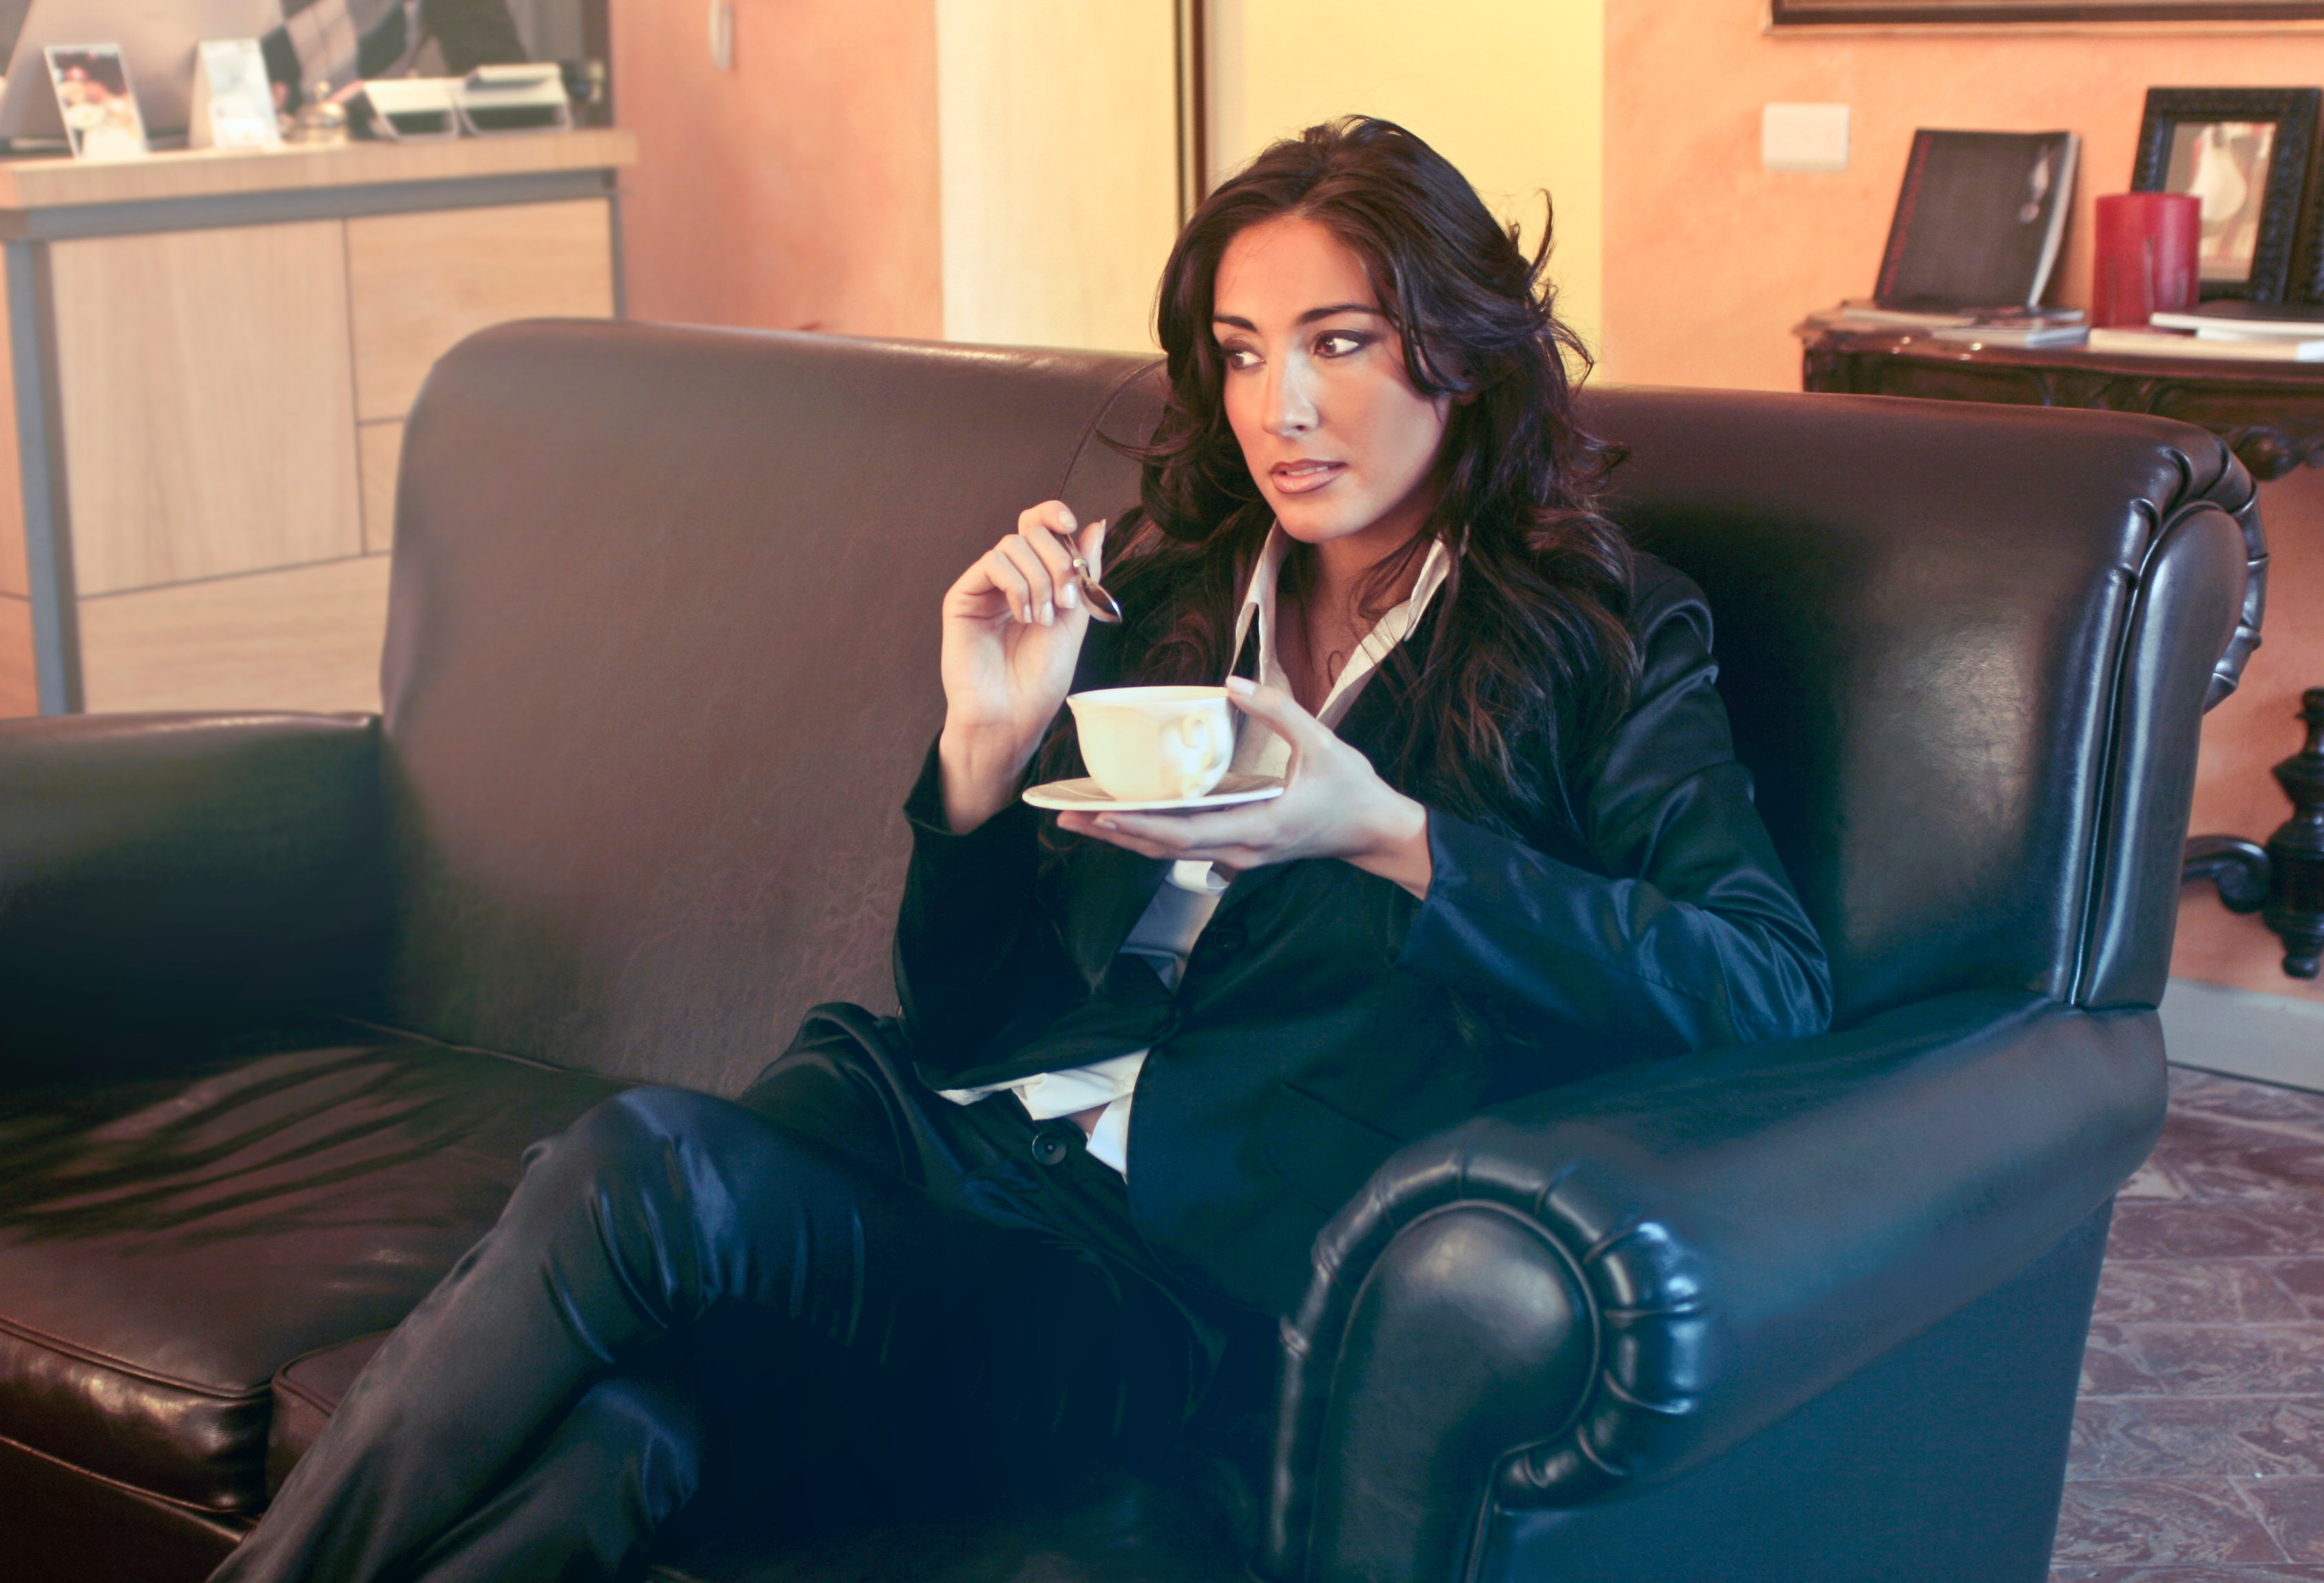 Woman in Black Blazer Holding Teacup While Sits on Black Sofa, Adult, Woman, Tea, Spoon, HQ Photo